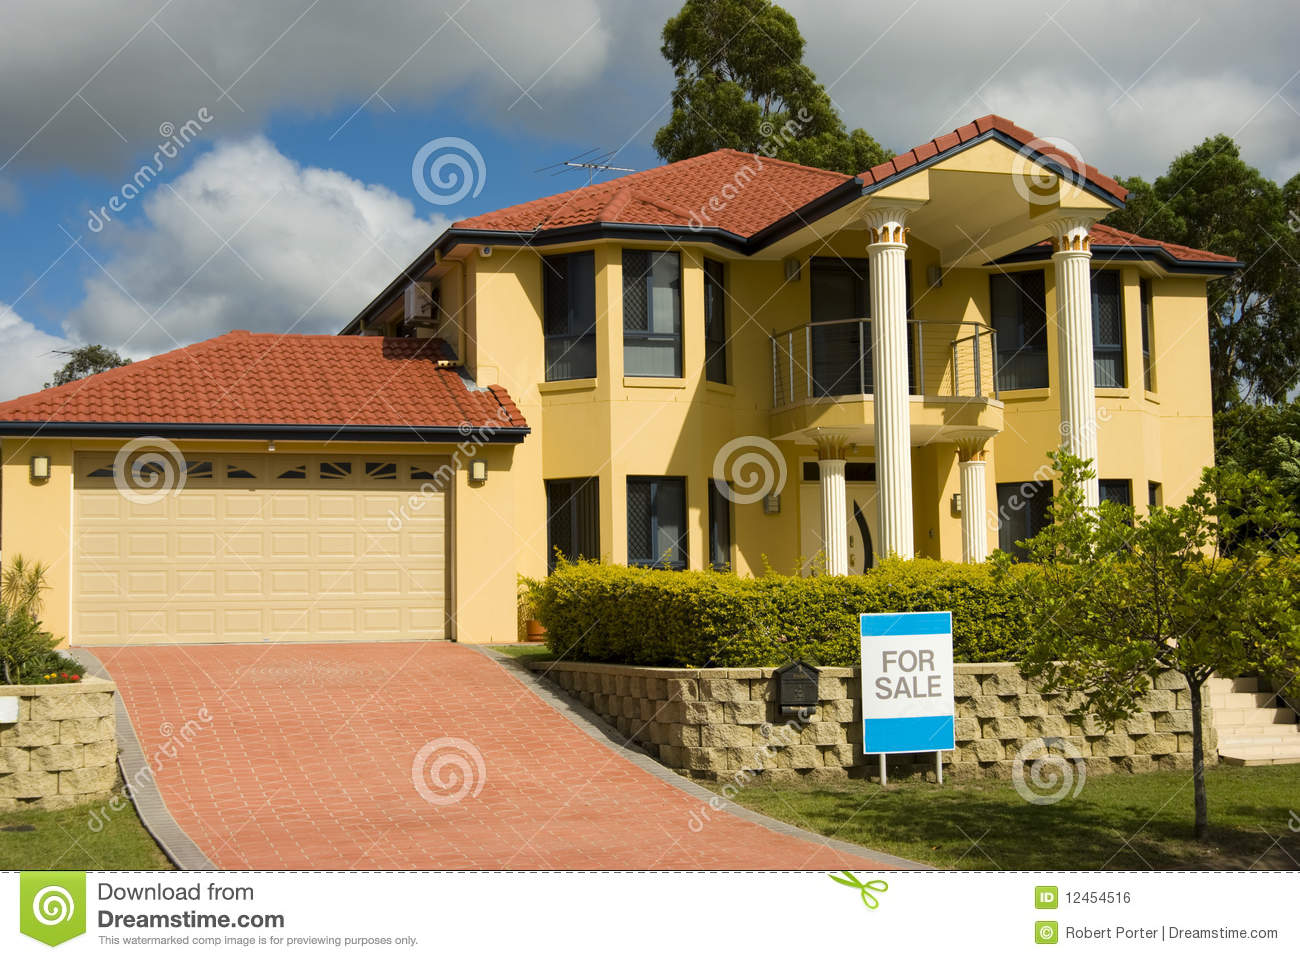 Modern house for sale royalty free stock image image for Modern house for sale